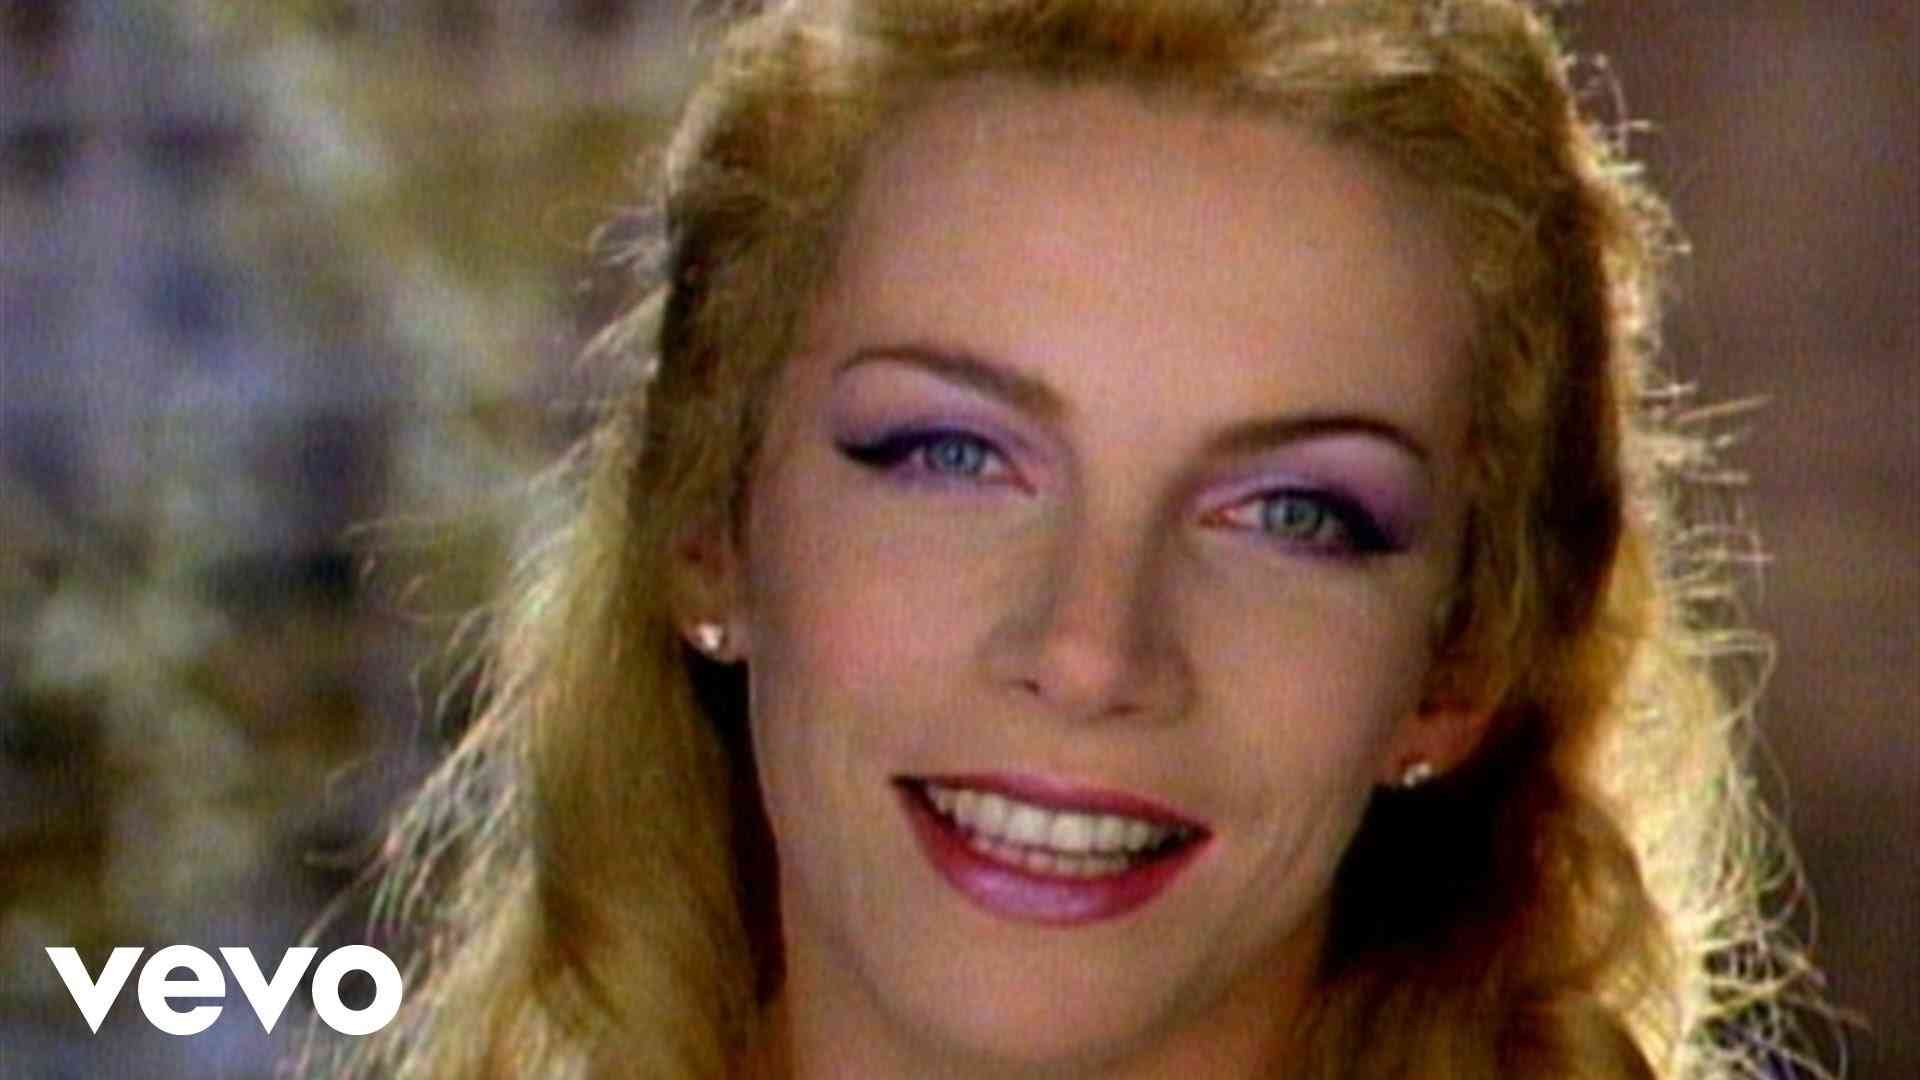 Eurythmics - There Must Be An Angel (Playing With My Heart) (Remastered) - YouTube